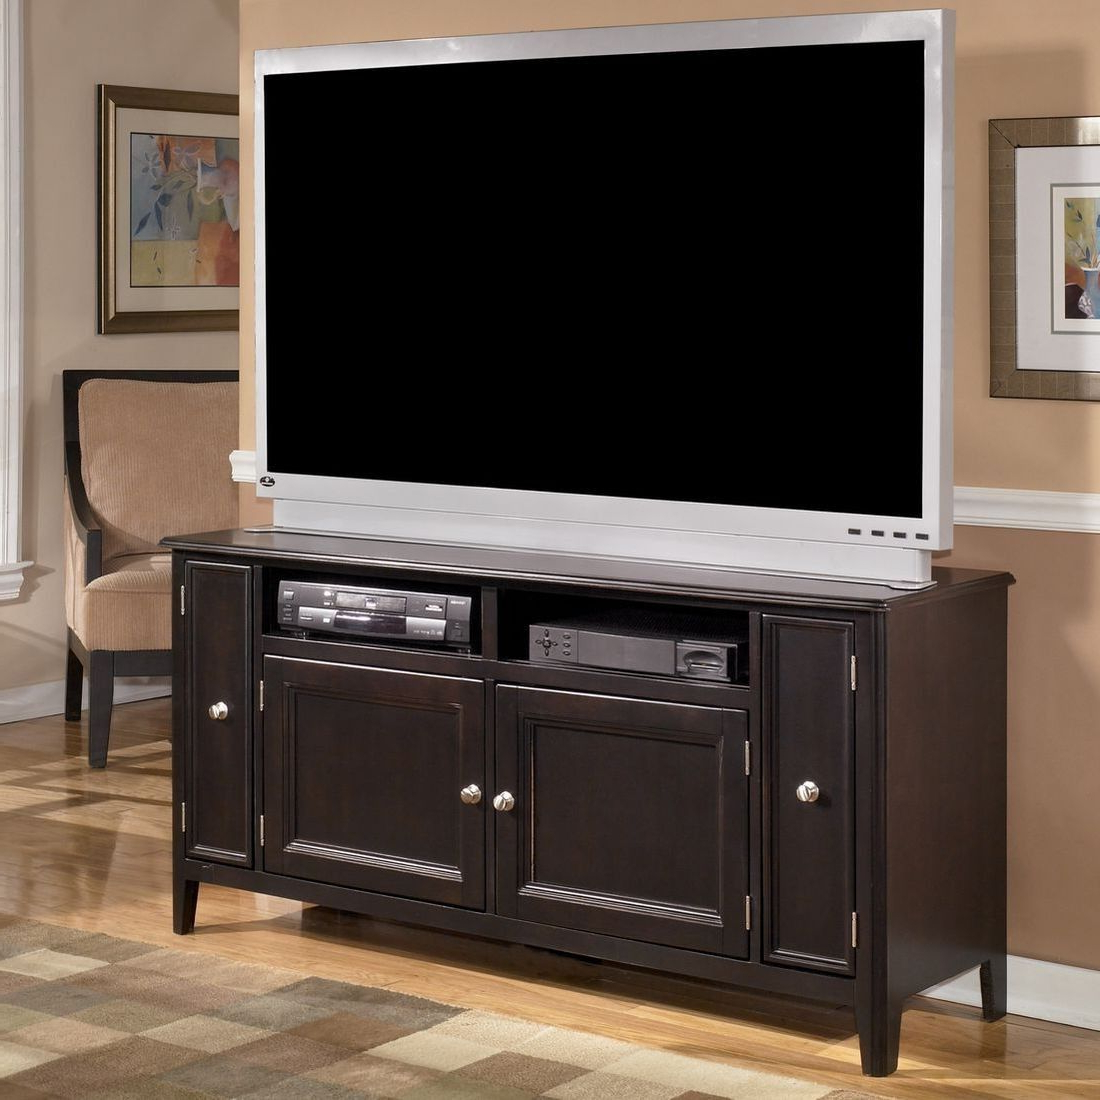 """The Sleek Styling Of The Contemporary """"carlyle With Regard To Wide Tv Stands Entertainment Center Columbia Walnut/black (View 13 of 20)"""